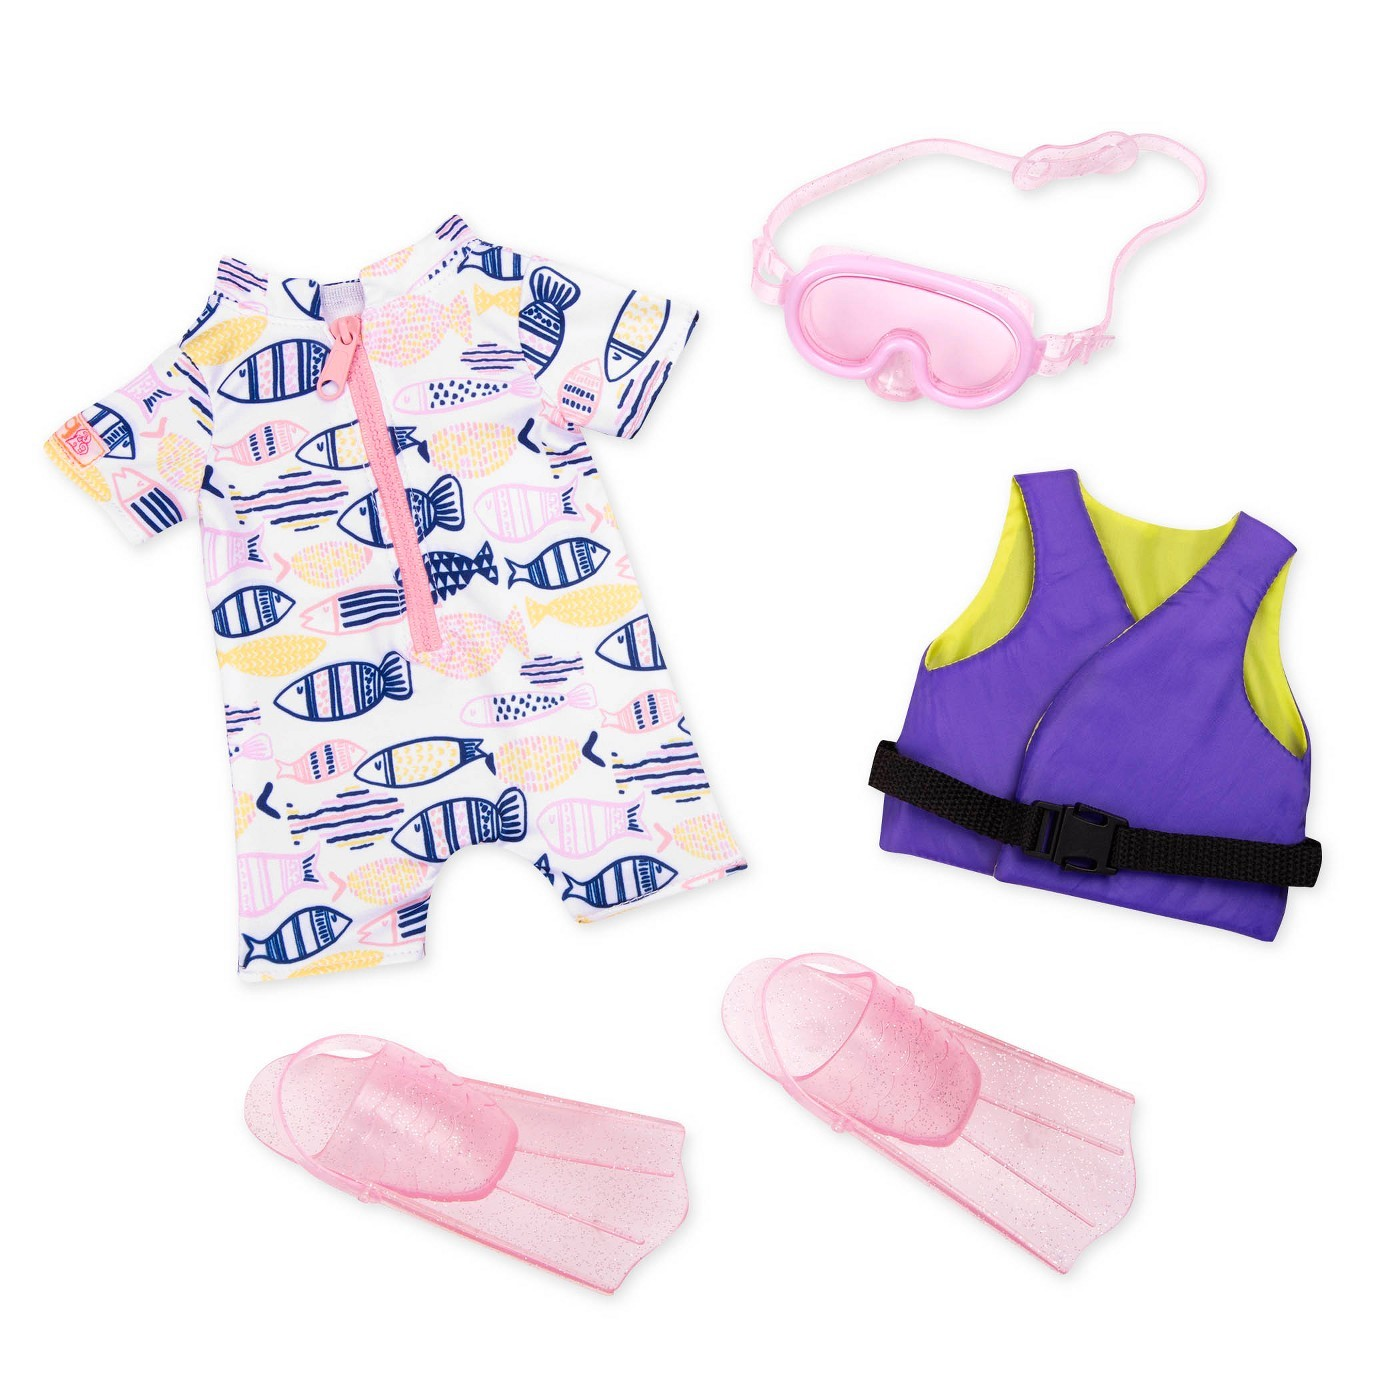 Our Generation: Regular Outfit - Snorkelling Outfit image